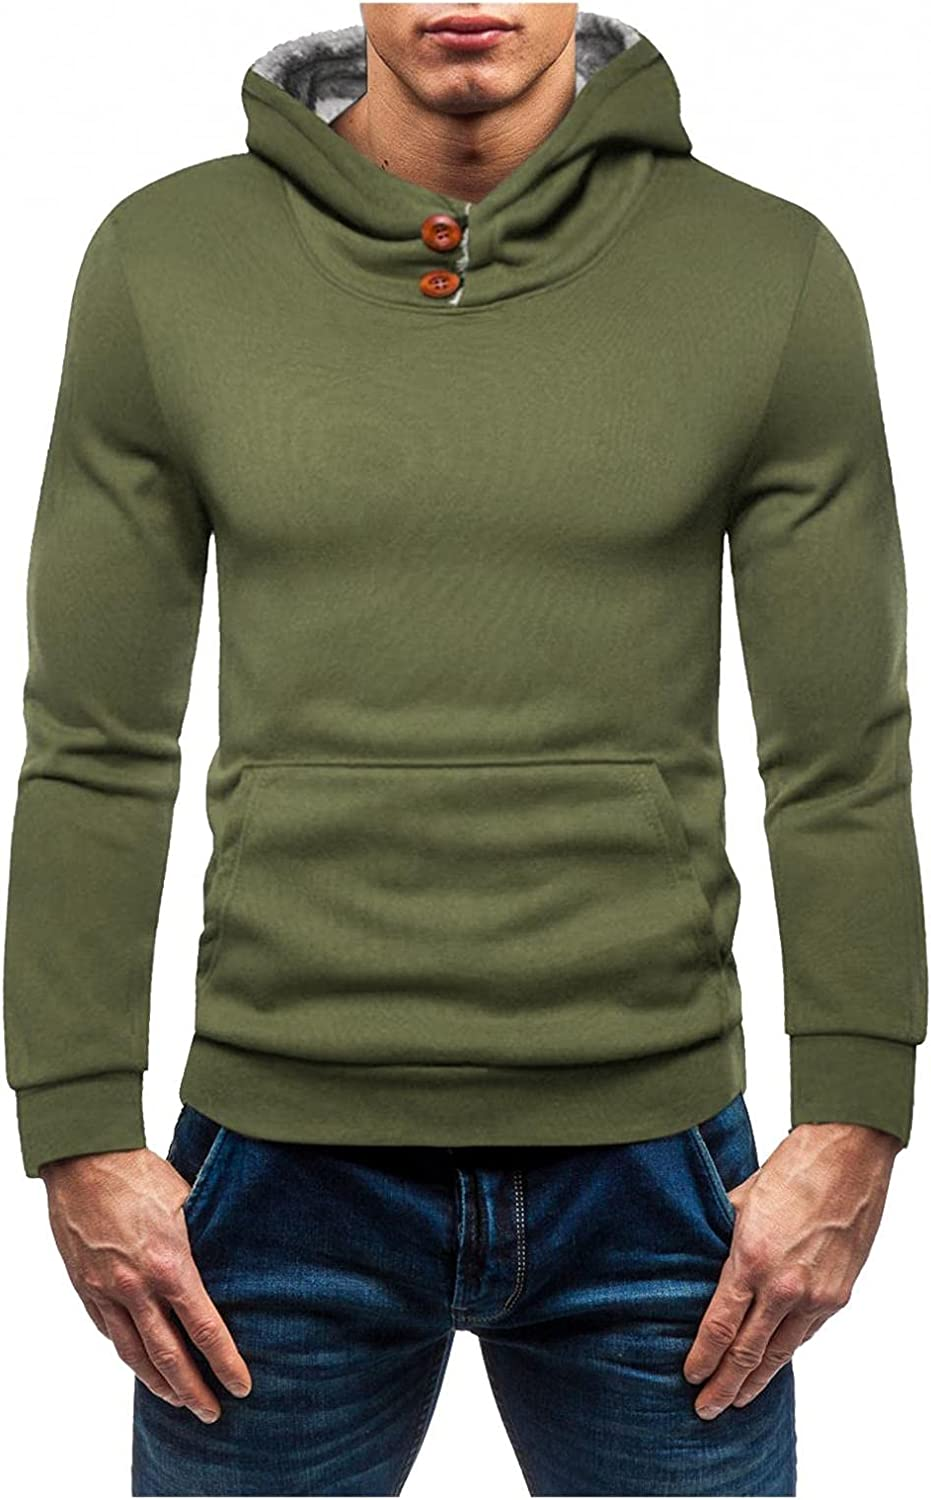 Mens Hoodies Pullover Big and Tall Co Fit Inexpensive 55% OFF Solid Sleeve Long Slim